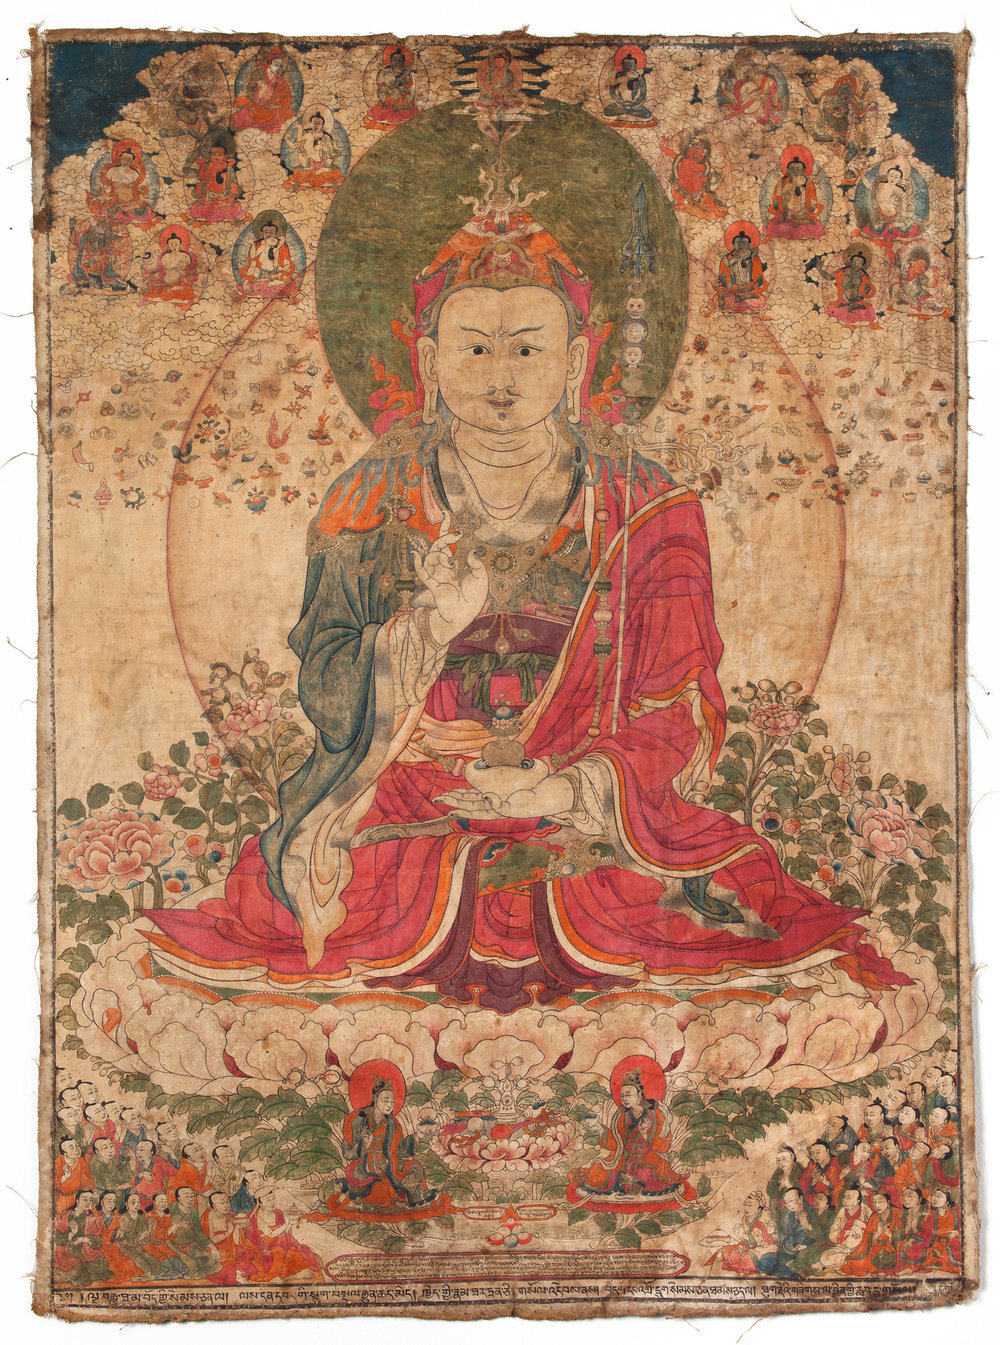 Padmasambhava, Tibet, 19th century, Ground mineral pigment on cloth, 36 1/4 x 28 1/4 inches, image courtesy Rubin Museum of Art